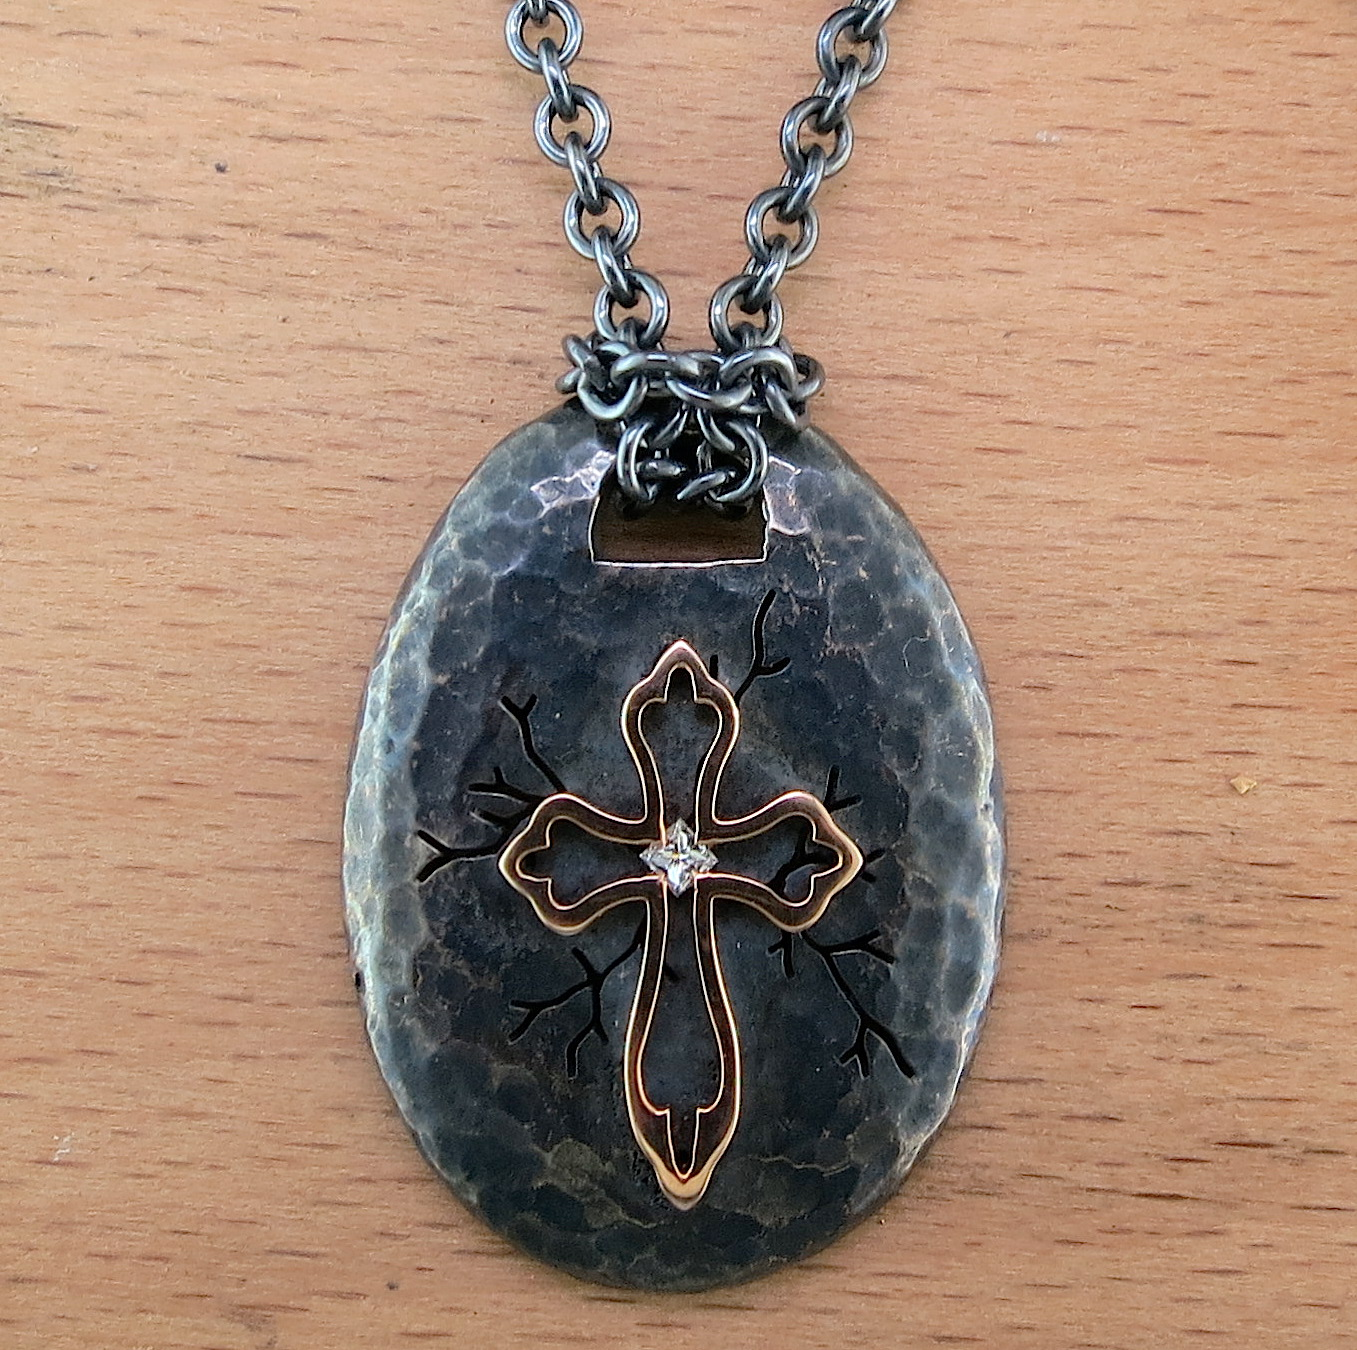 Hand Forged Silver, 18 Karat Yellow Gold, and Diamond Cross Pendant on an Organic Silver Chain (MB2138)